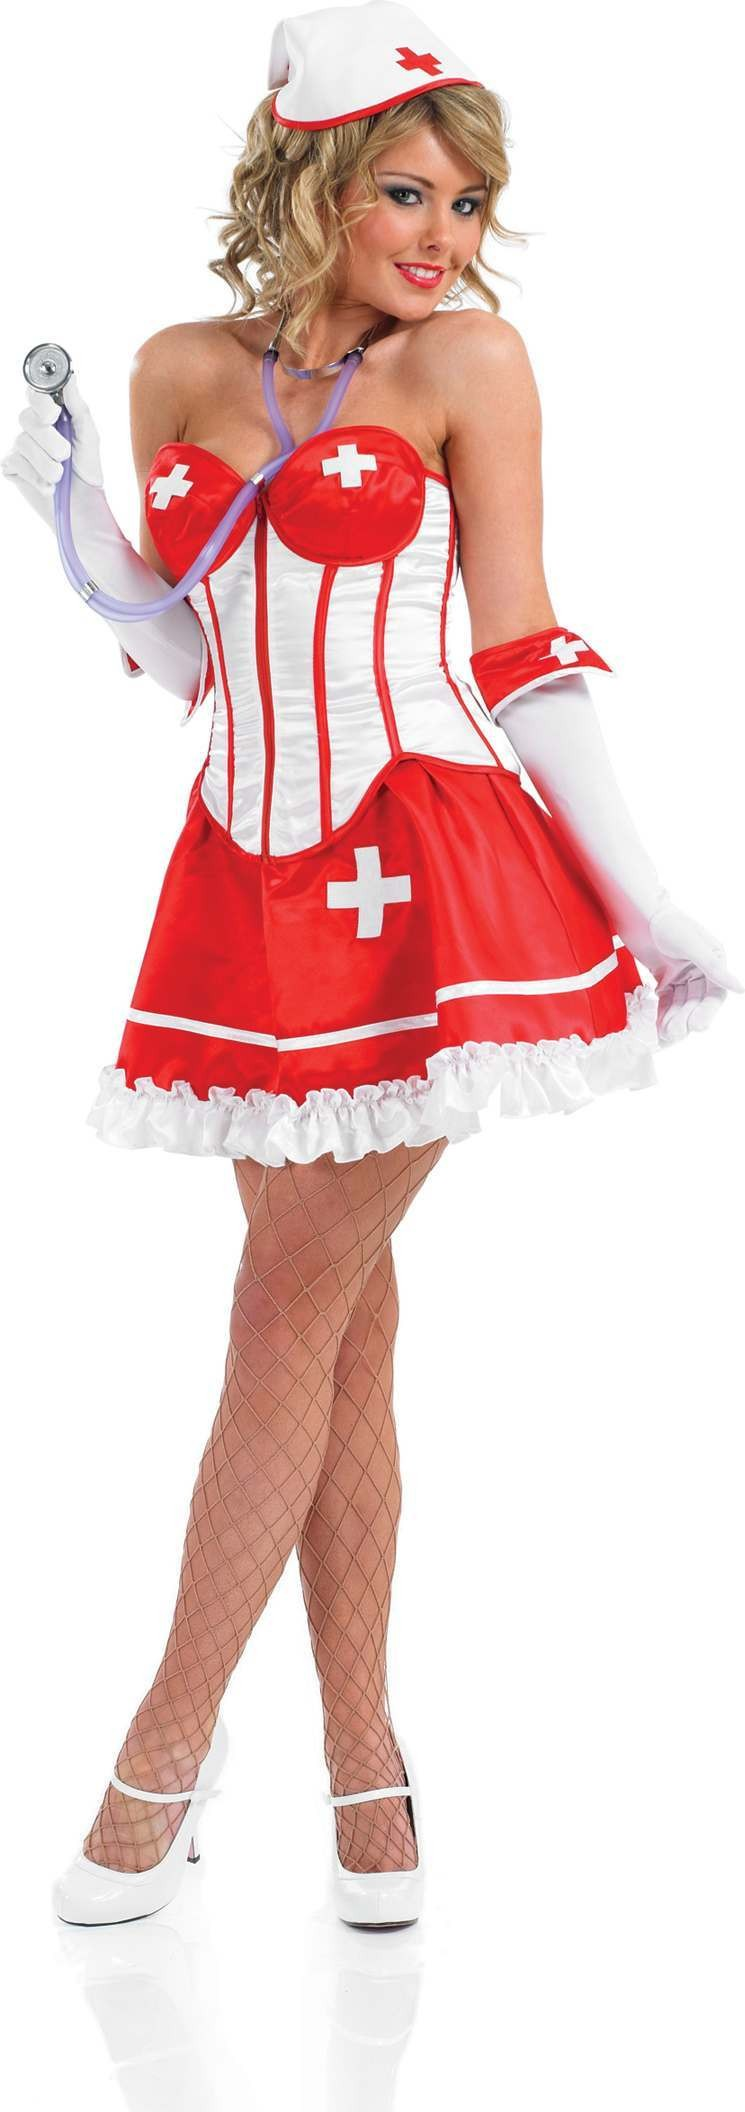 Sexy Tutu Nurse Fancy Dress Costume